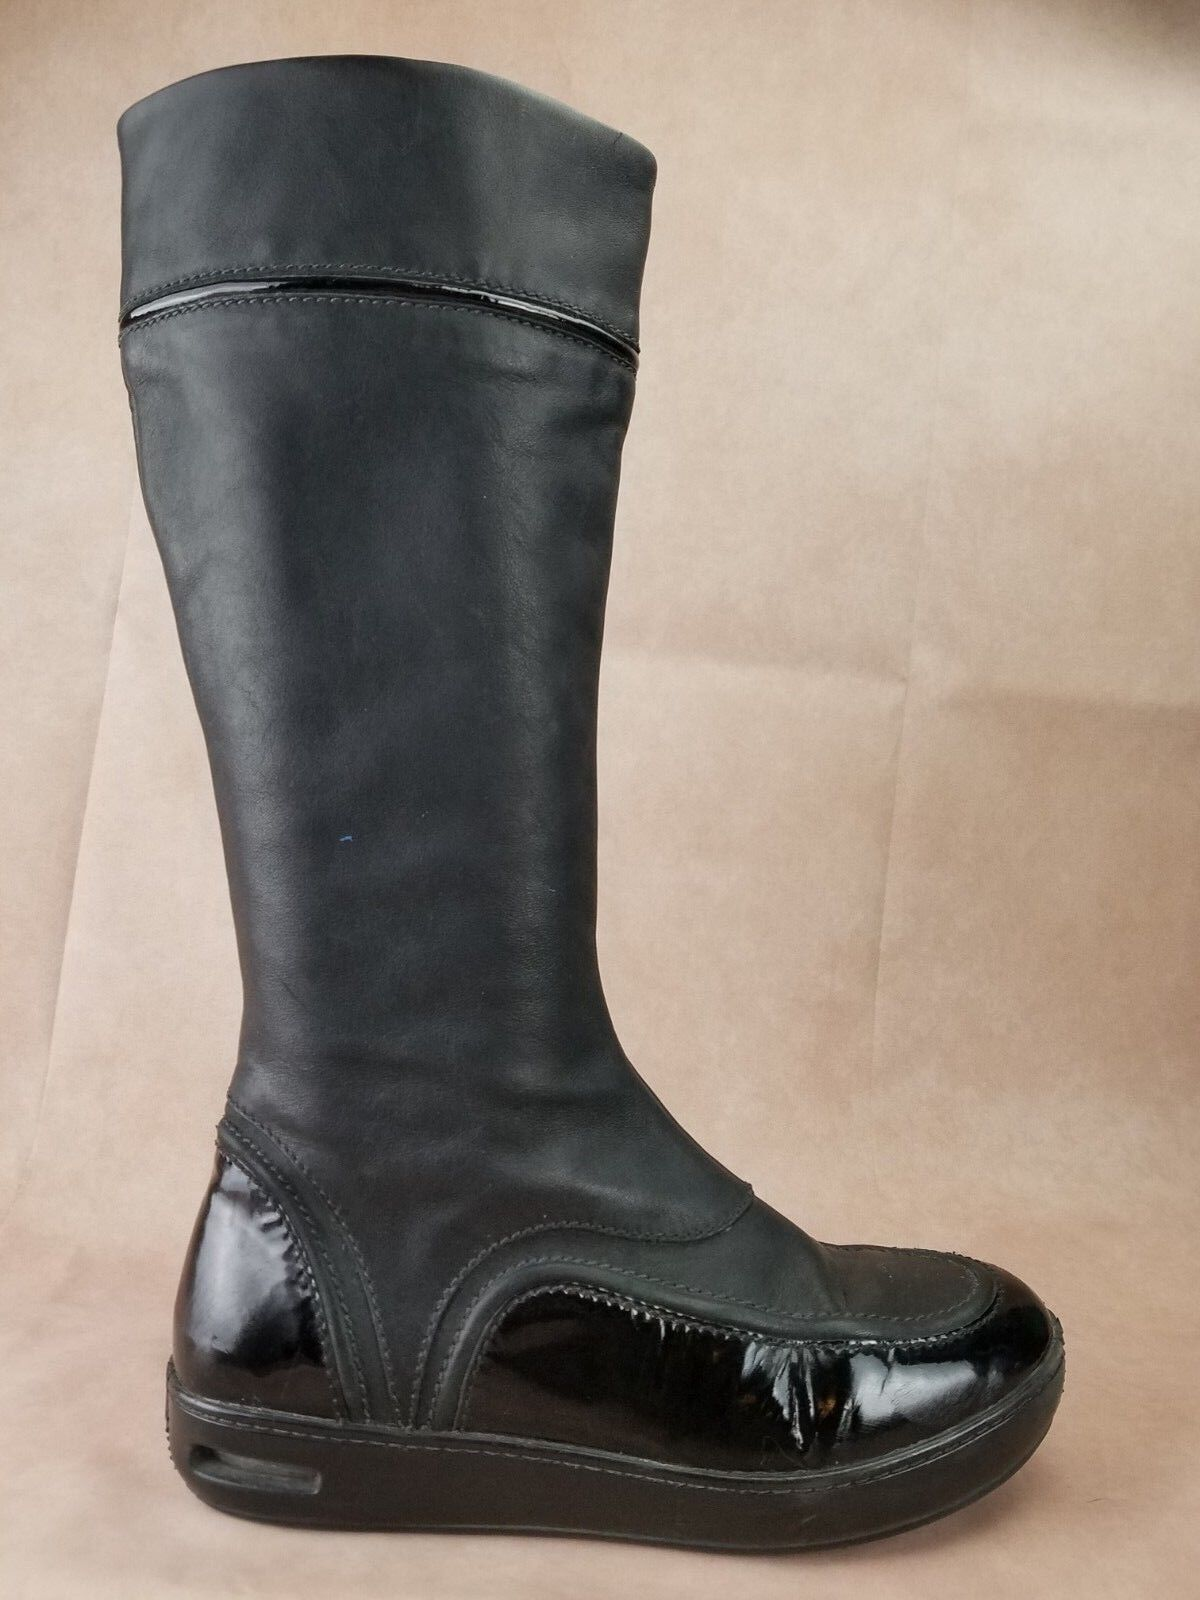 Cole Haan Womens Waterproof Knee Boots Size 7.5 Black Patent Leather Zip Up